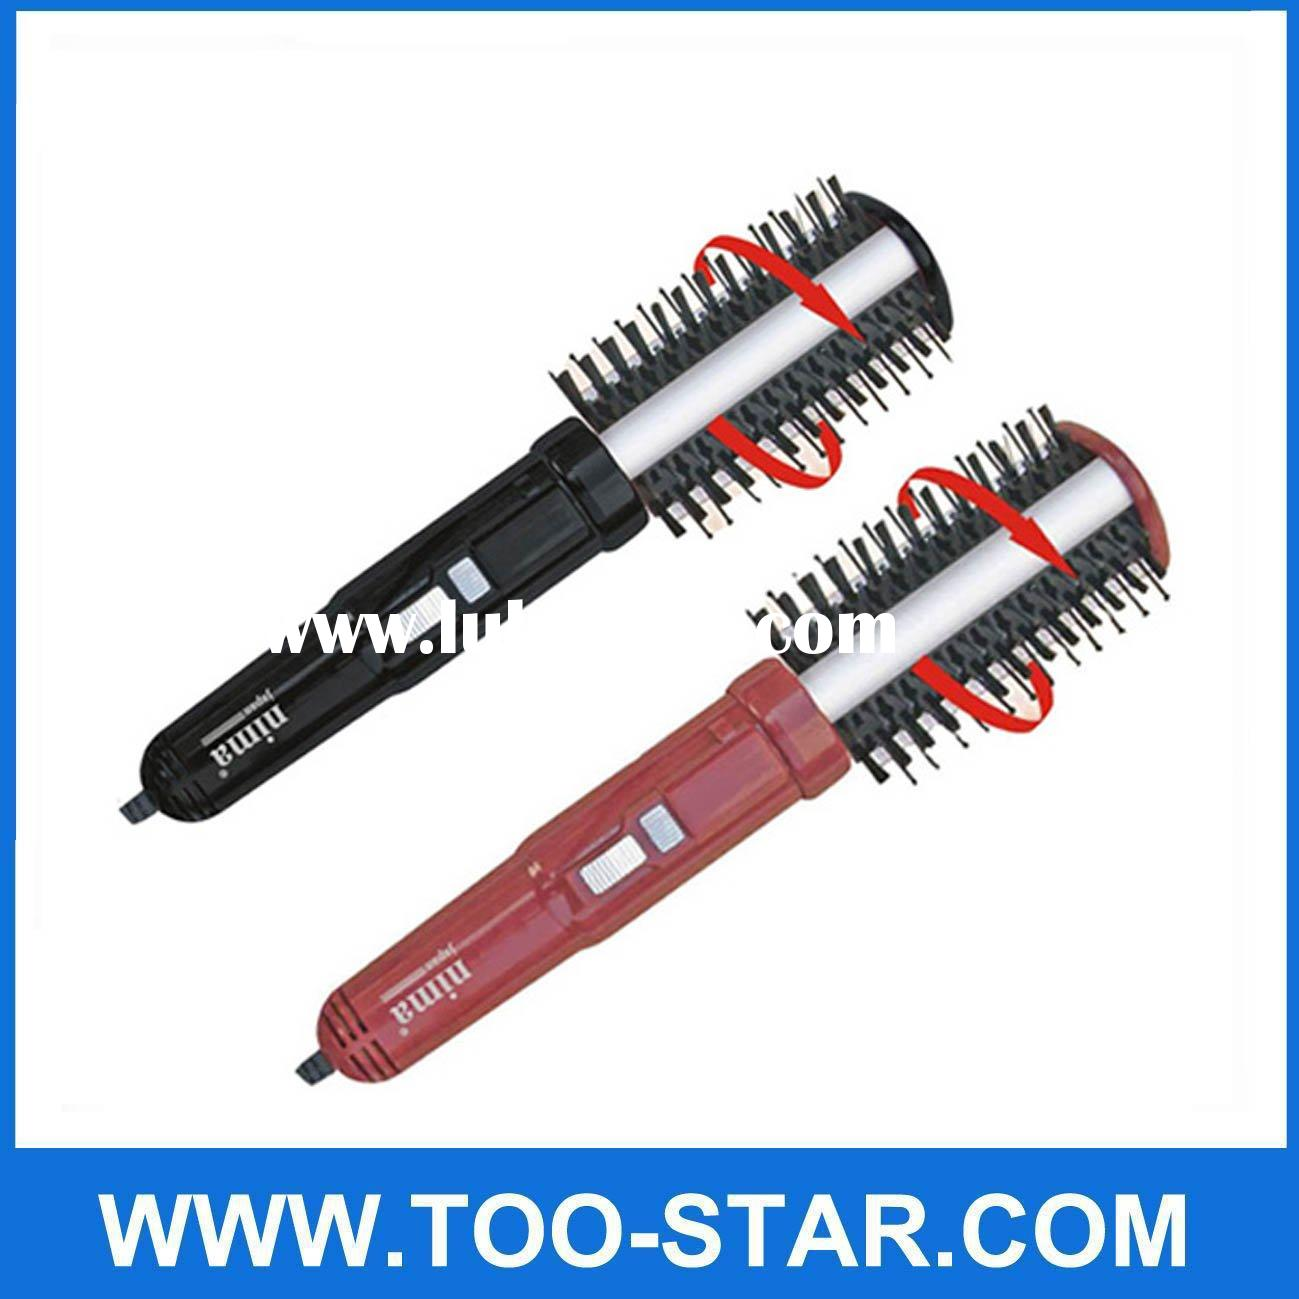 Hot Air Roto Hair Styler as seen on TV